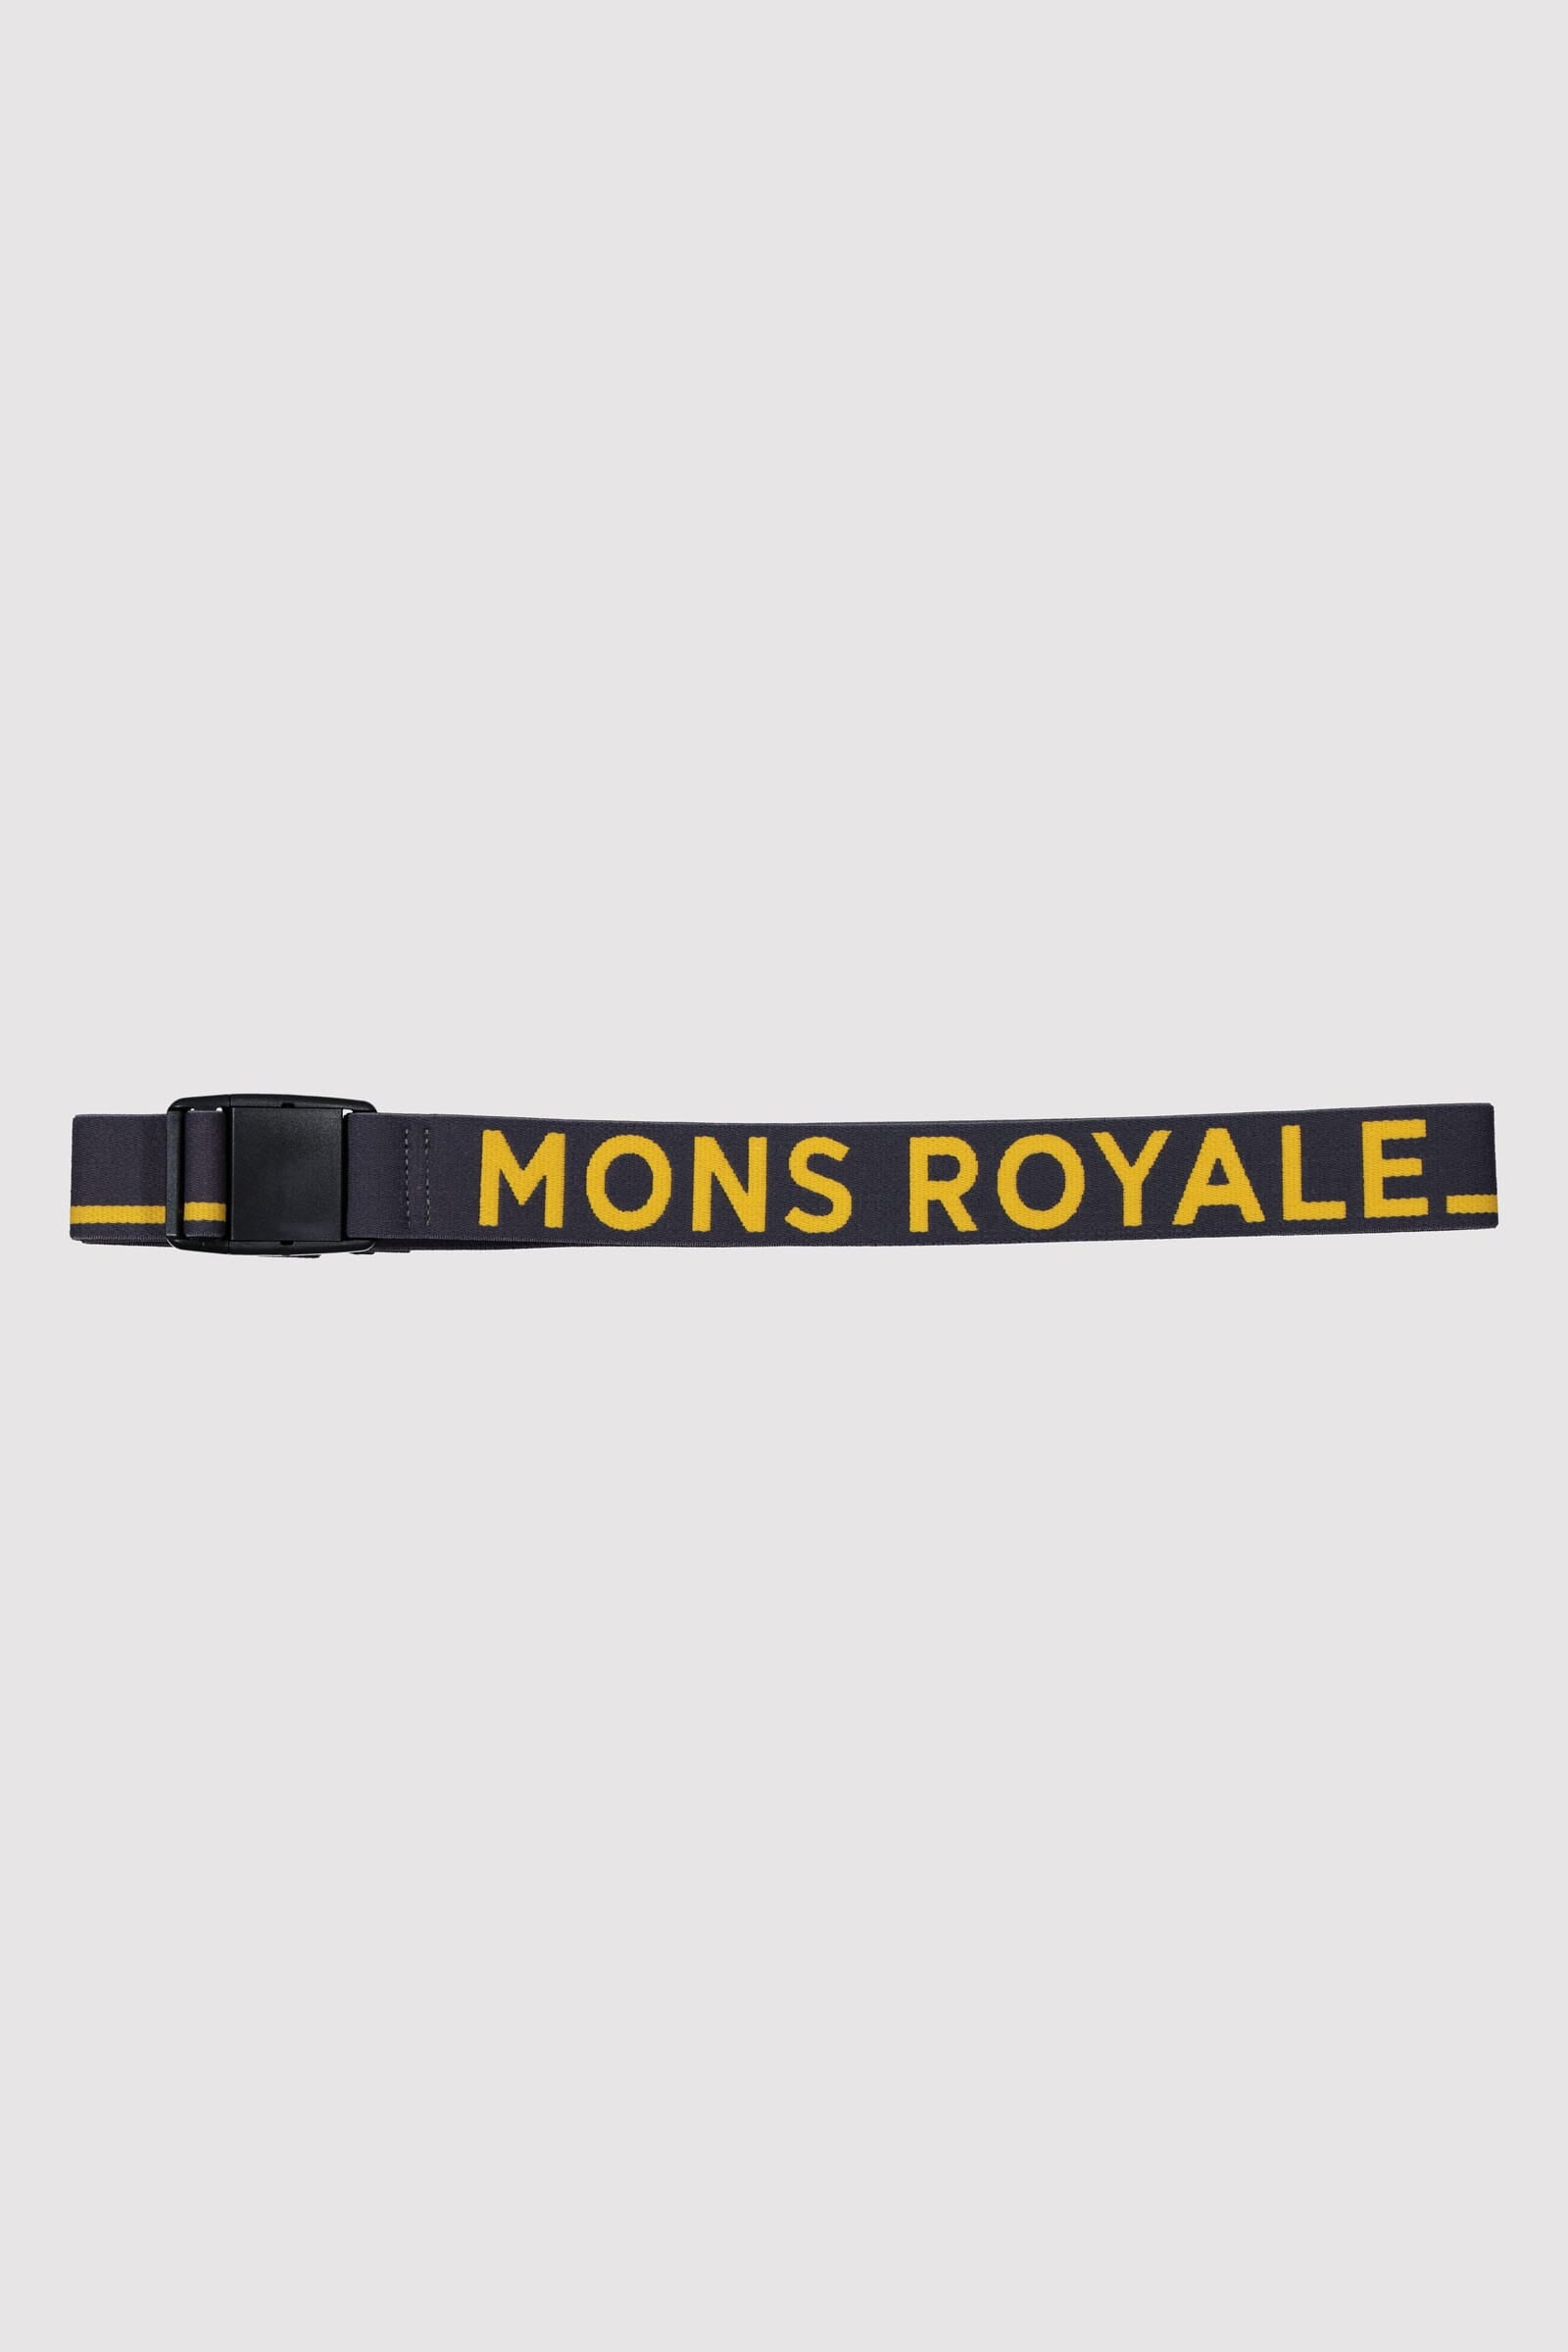 Mons Belt - 9 Iron / Gold